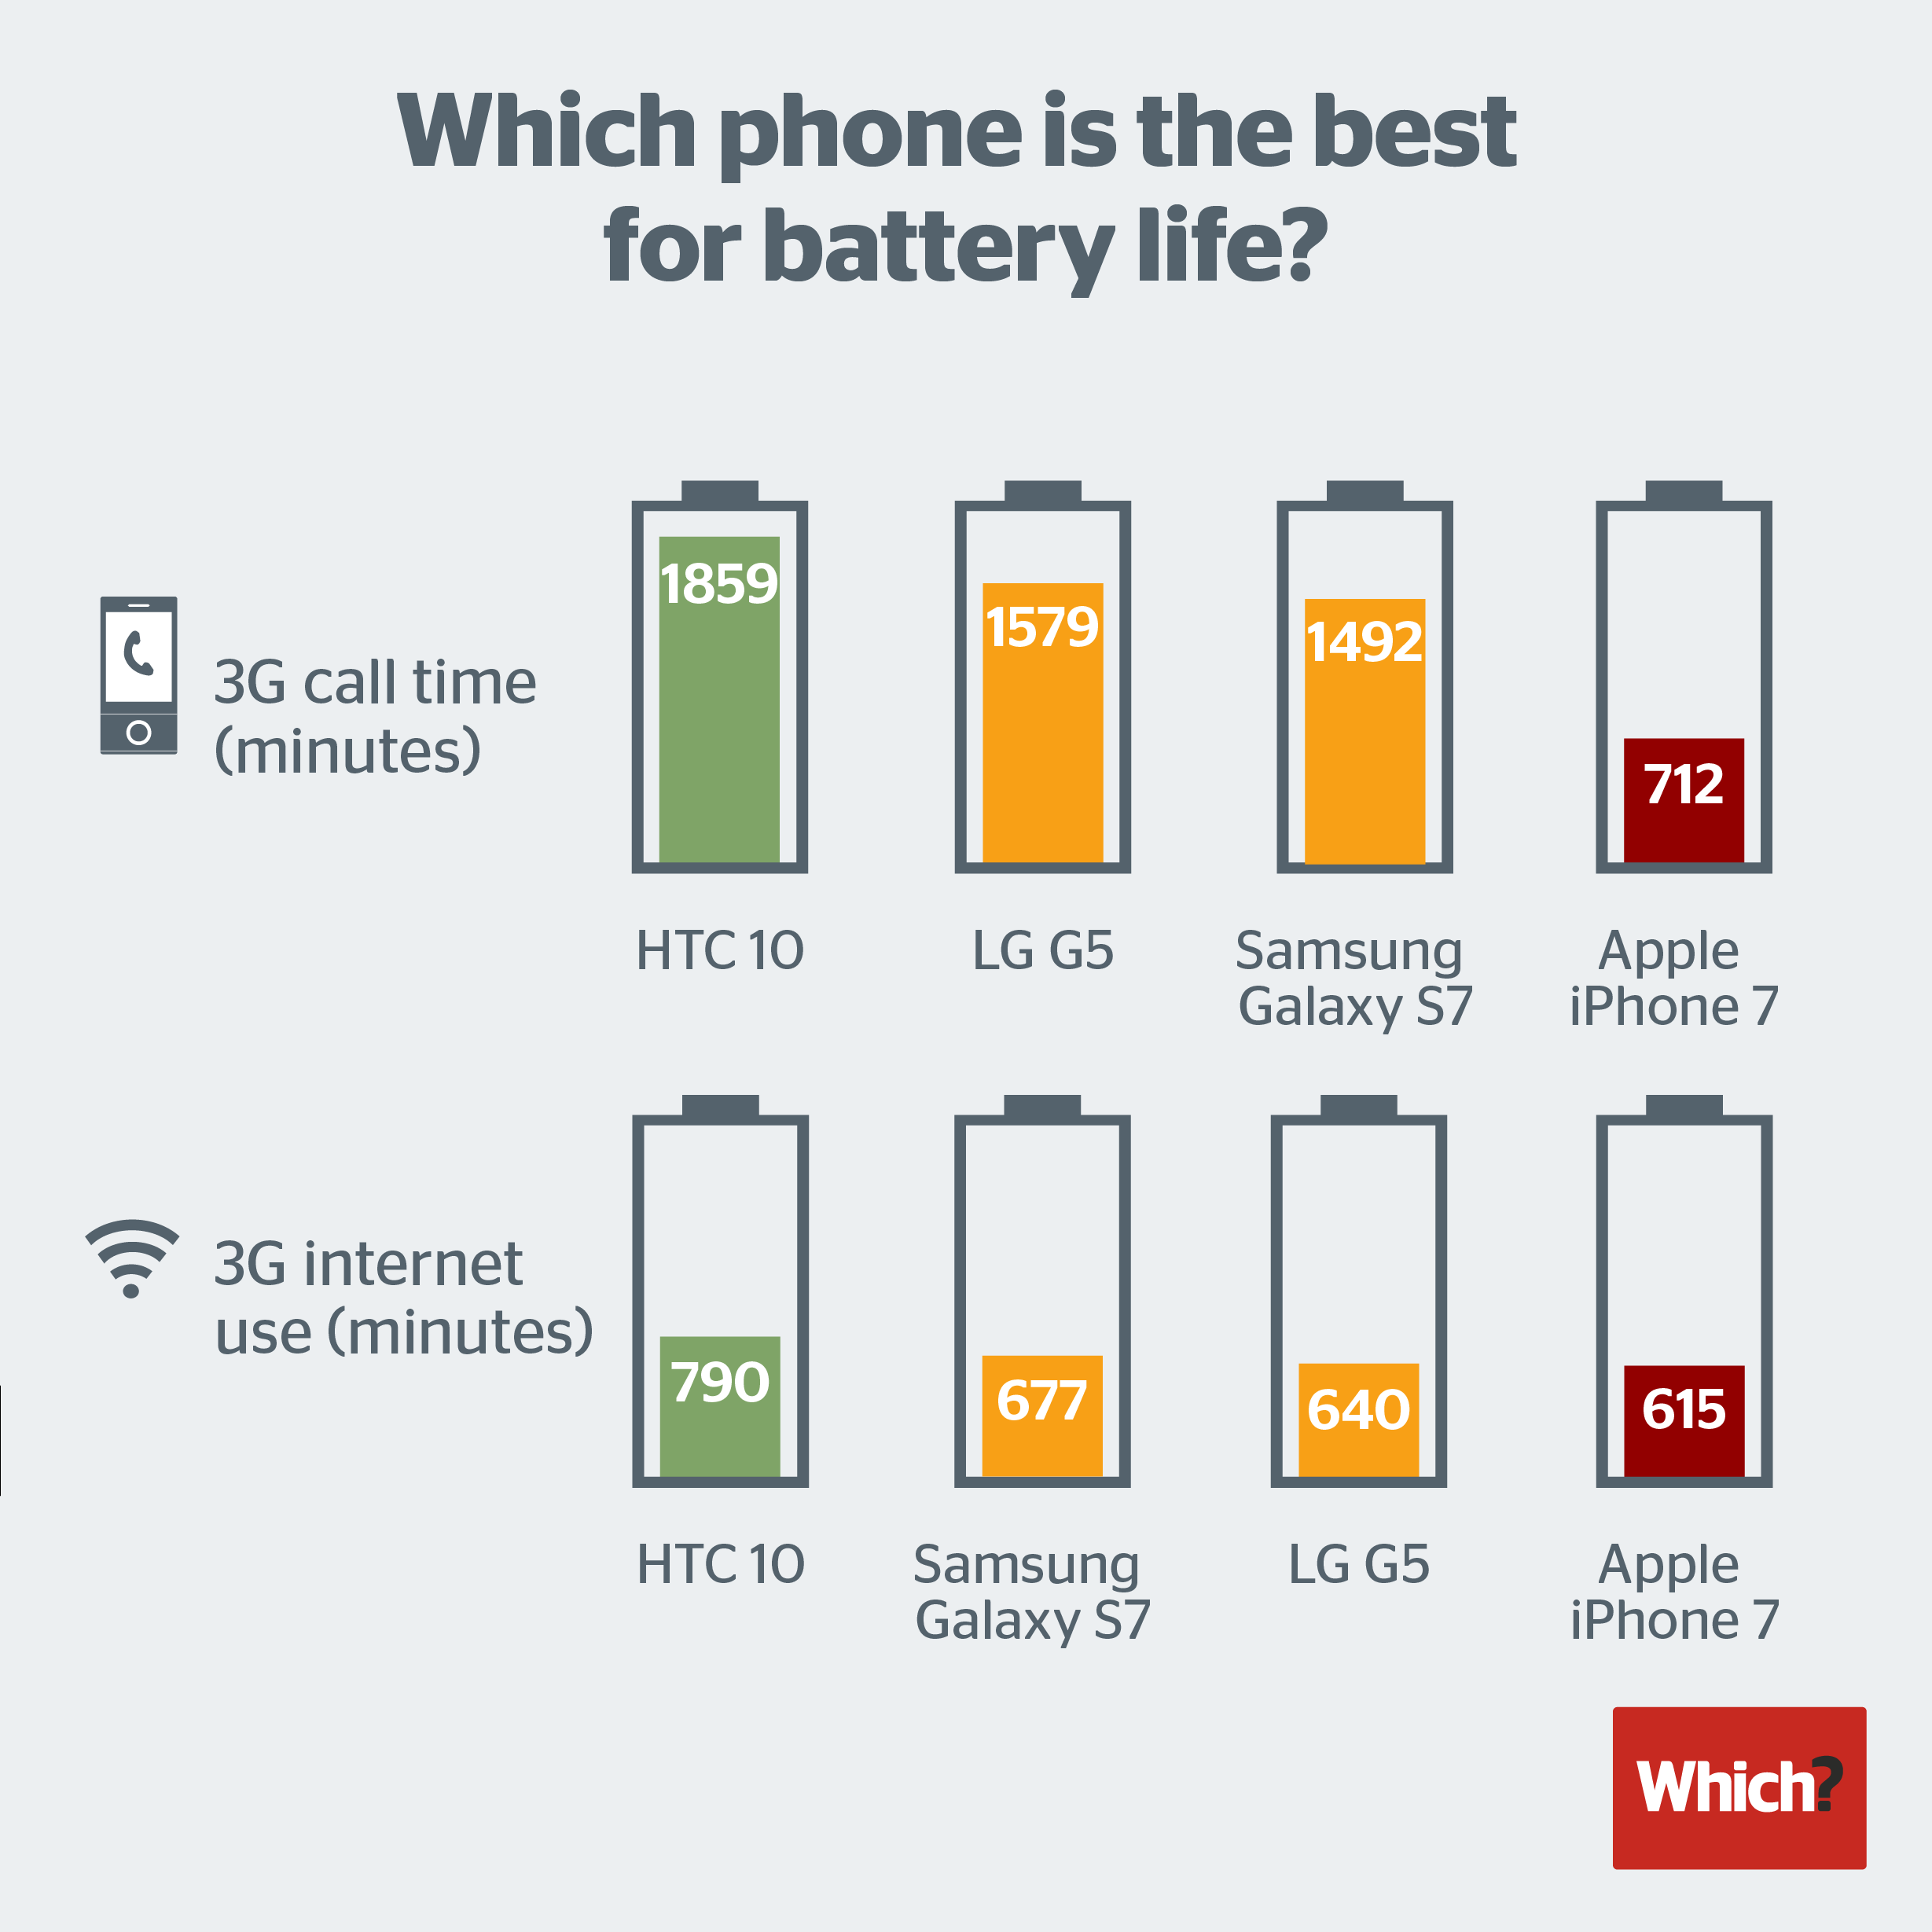 iphone-7-loses-the-comparison-of-battery-test_01